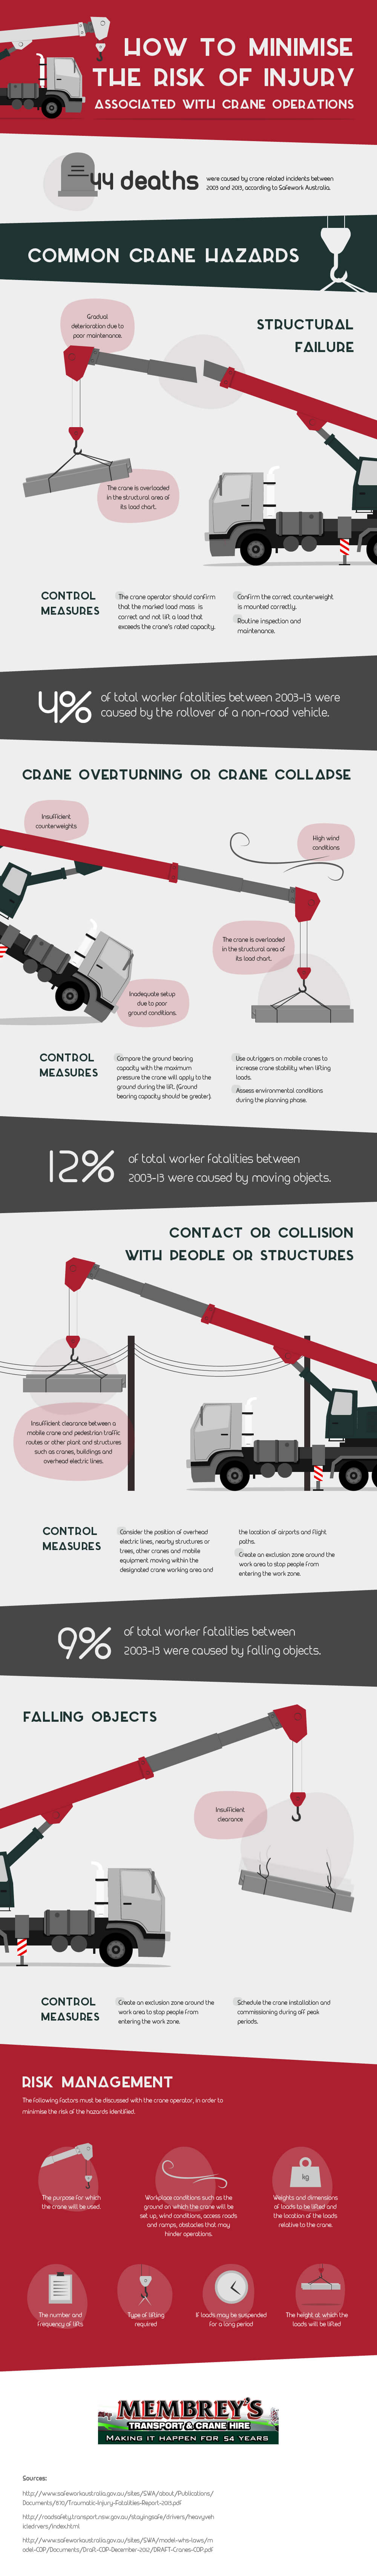 How To Minimize Risk of Injury Associated With Crane Operations